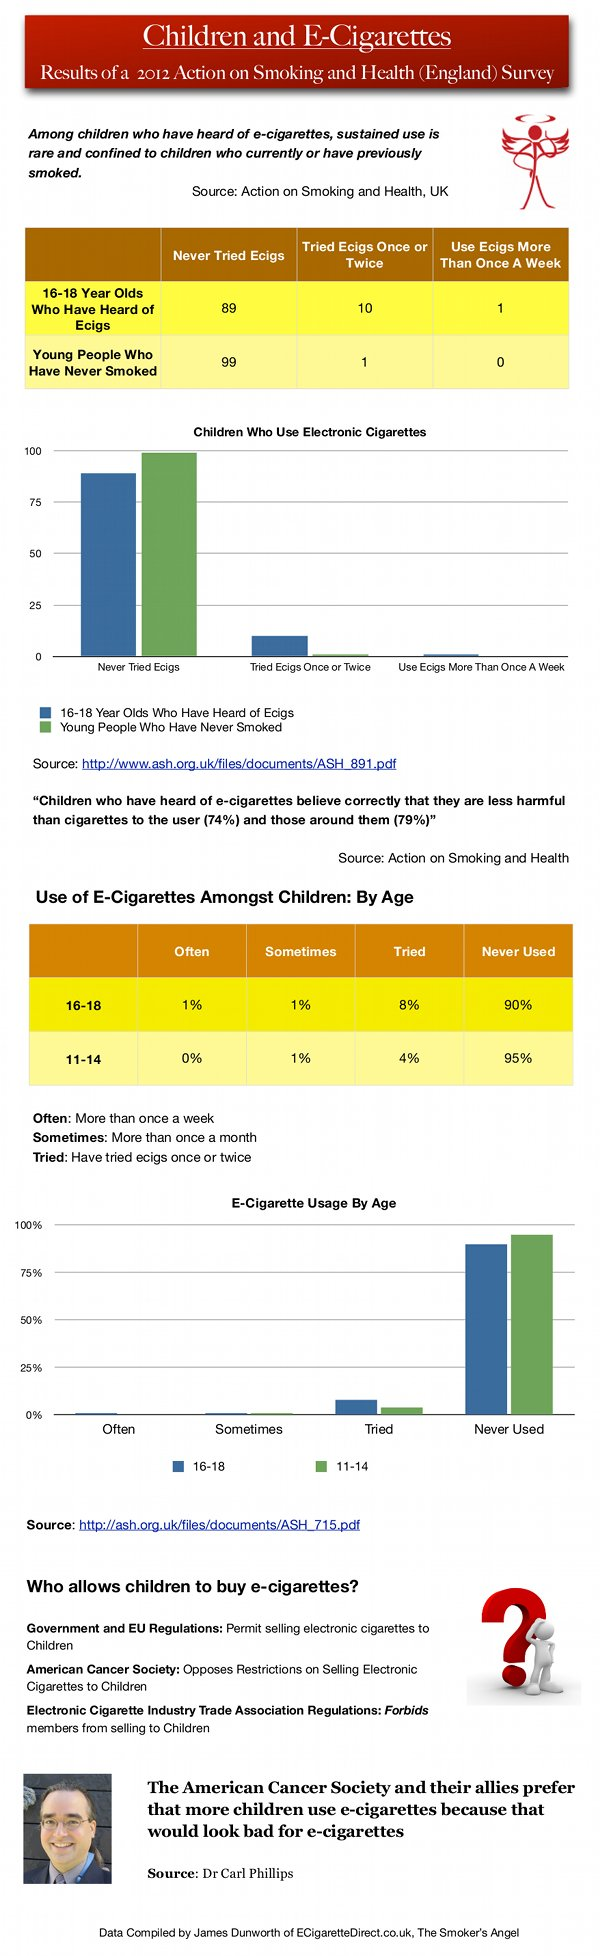 Infographic displaying the results of a 2012 Action on Smoking and Health survey into children's usage of electronic cigarettes.